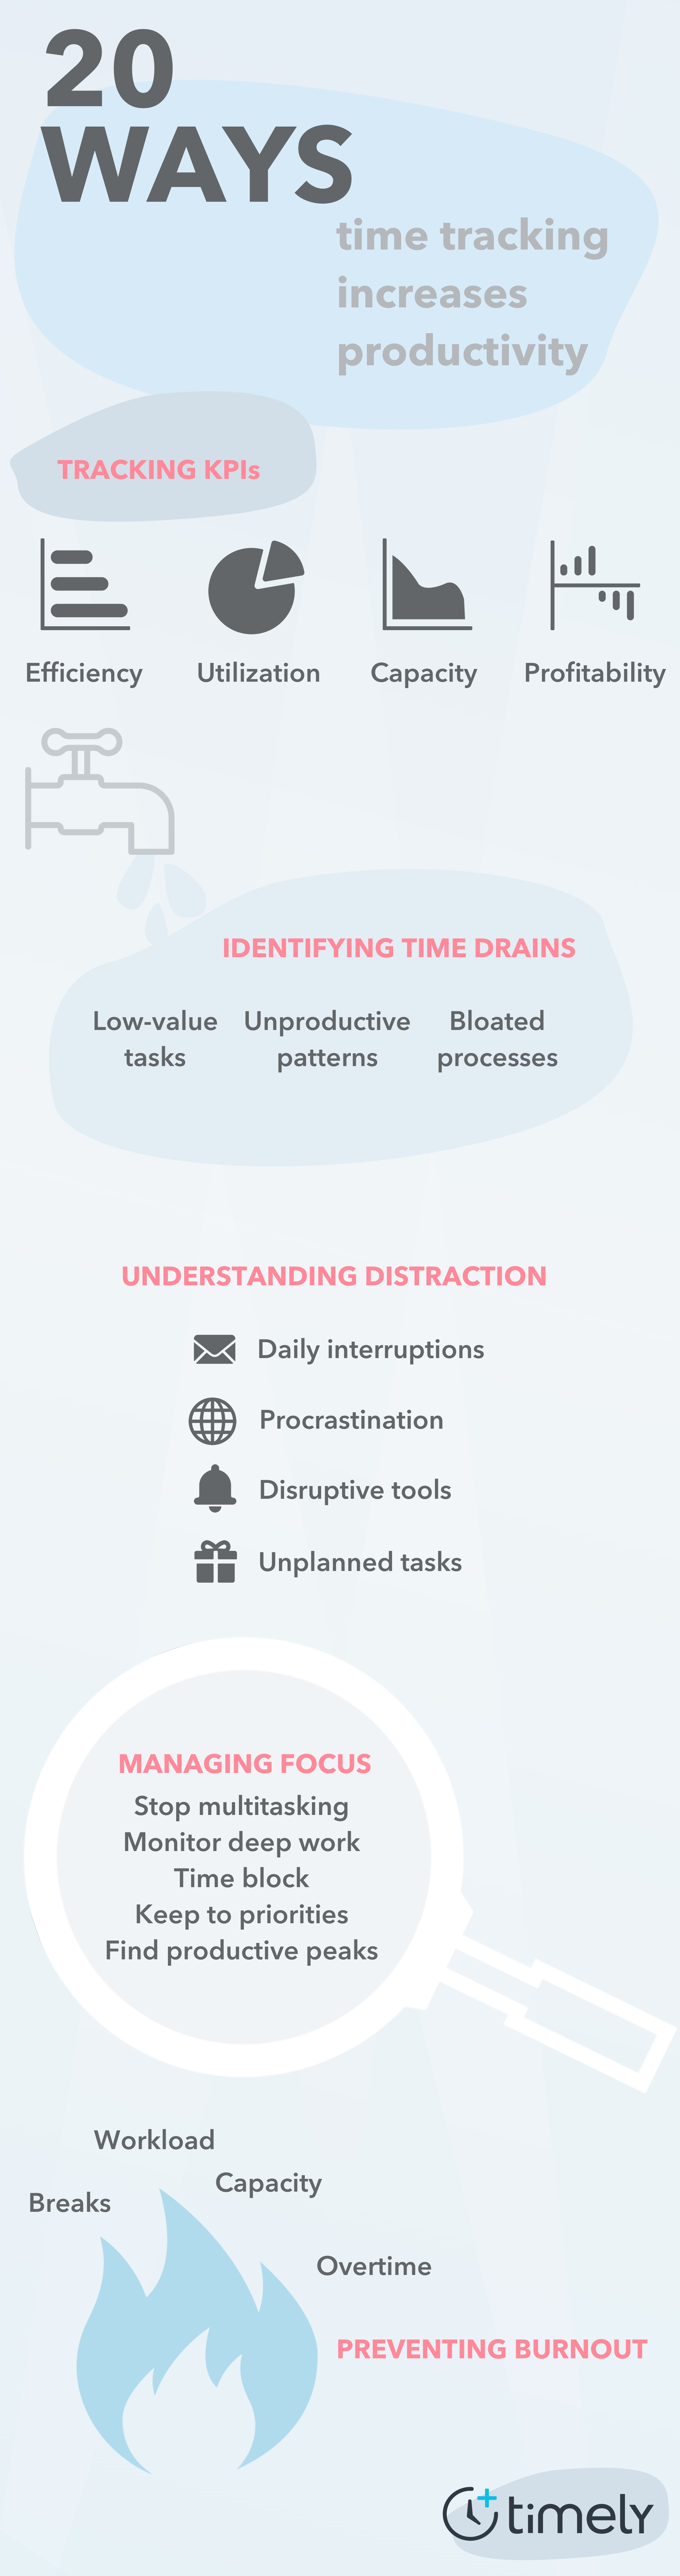 time-tracking-productivity@2x